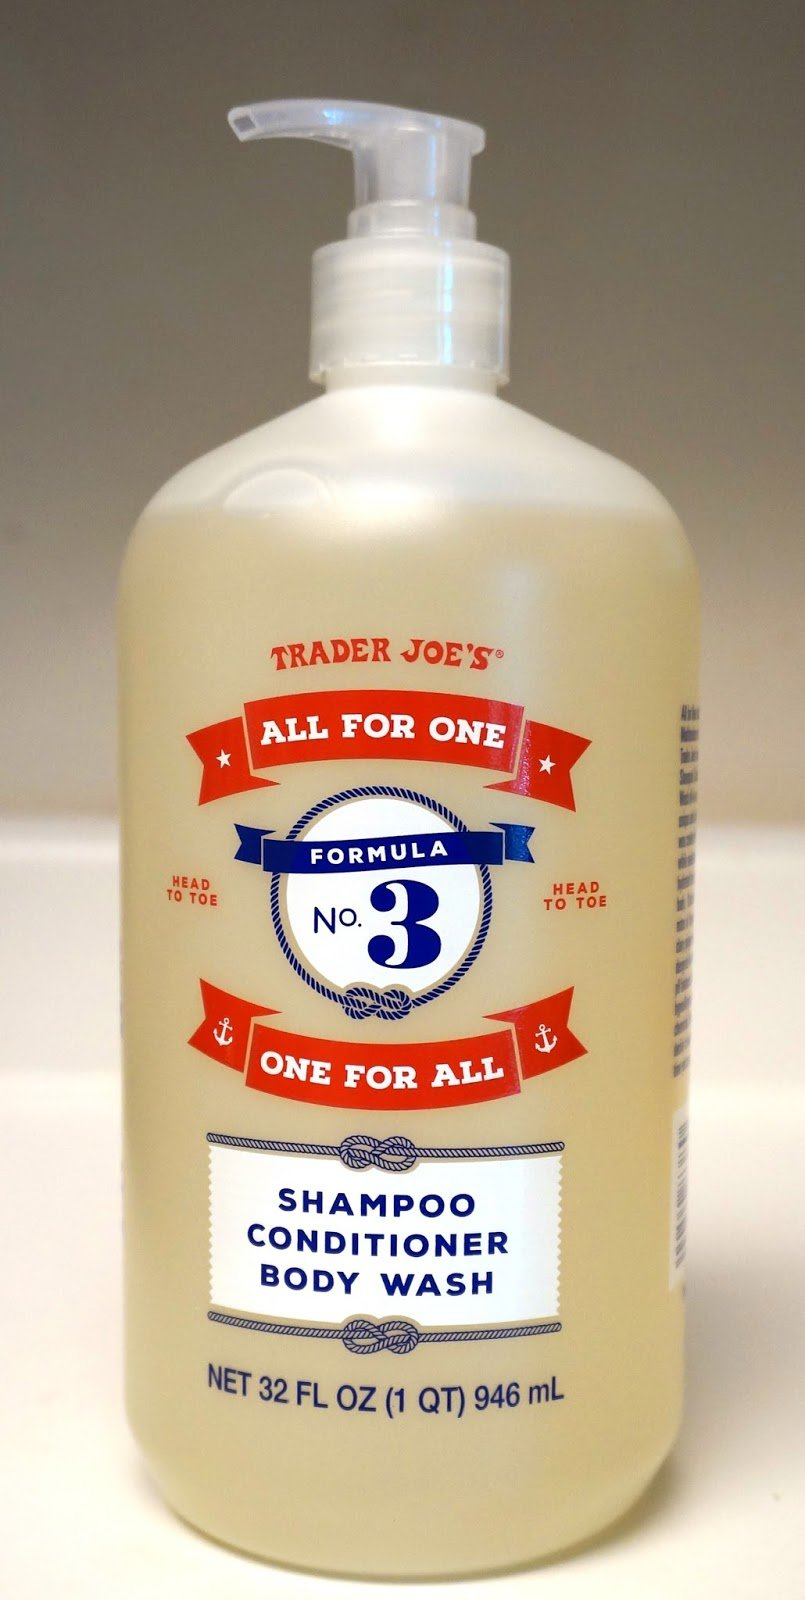 Trader Joe's - FORMULA NO.3 ALL FOR ONE, ONE FOR ALL Shampoo, Conditioner & Body Wash NET 32 FL OZ 946 ml